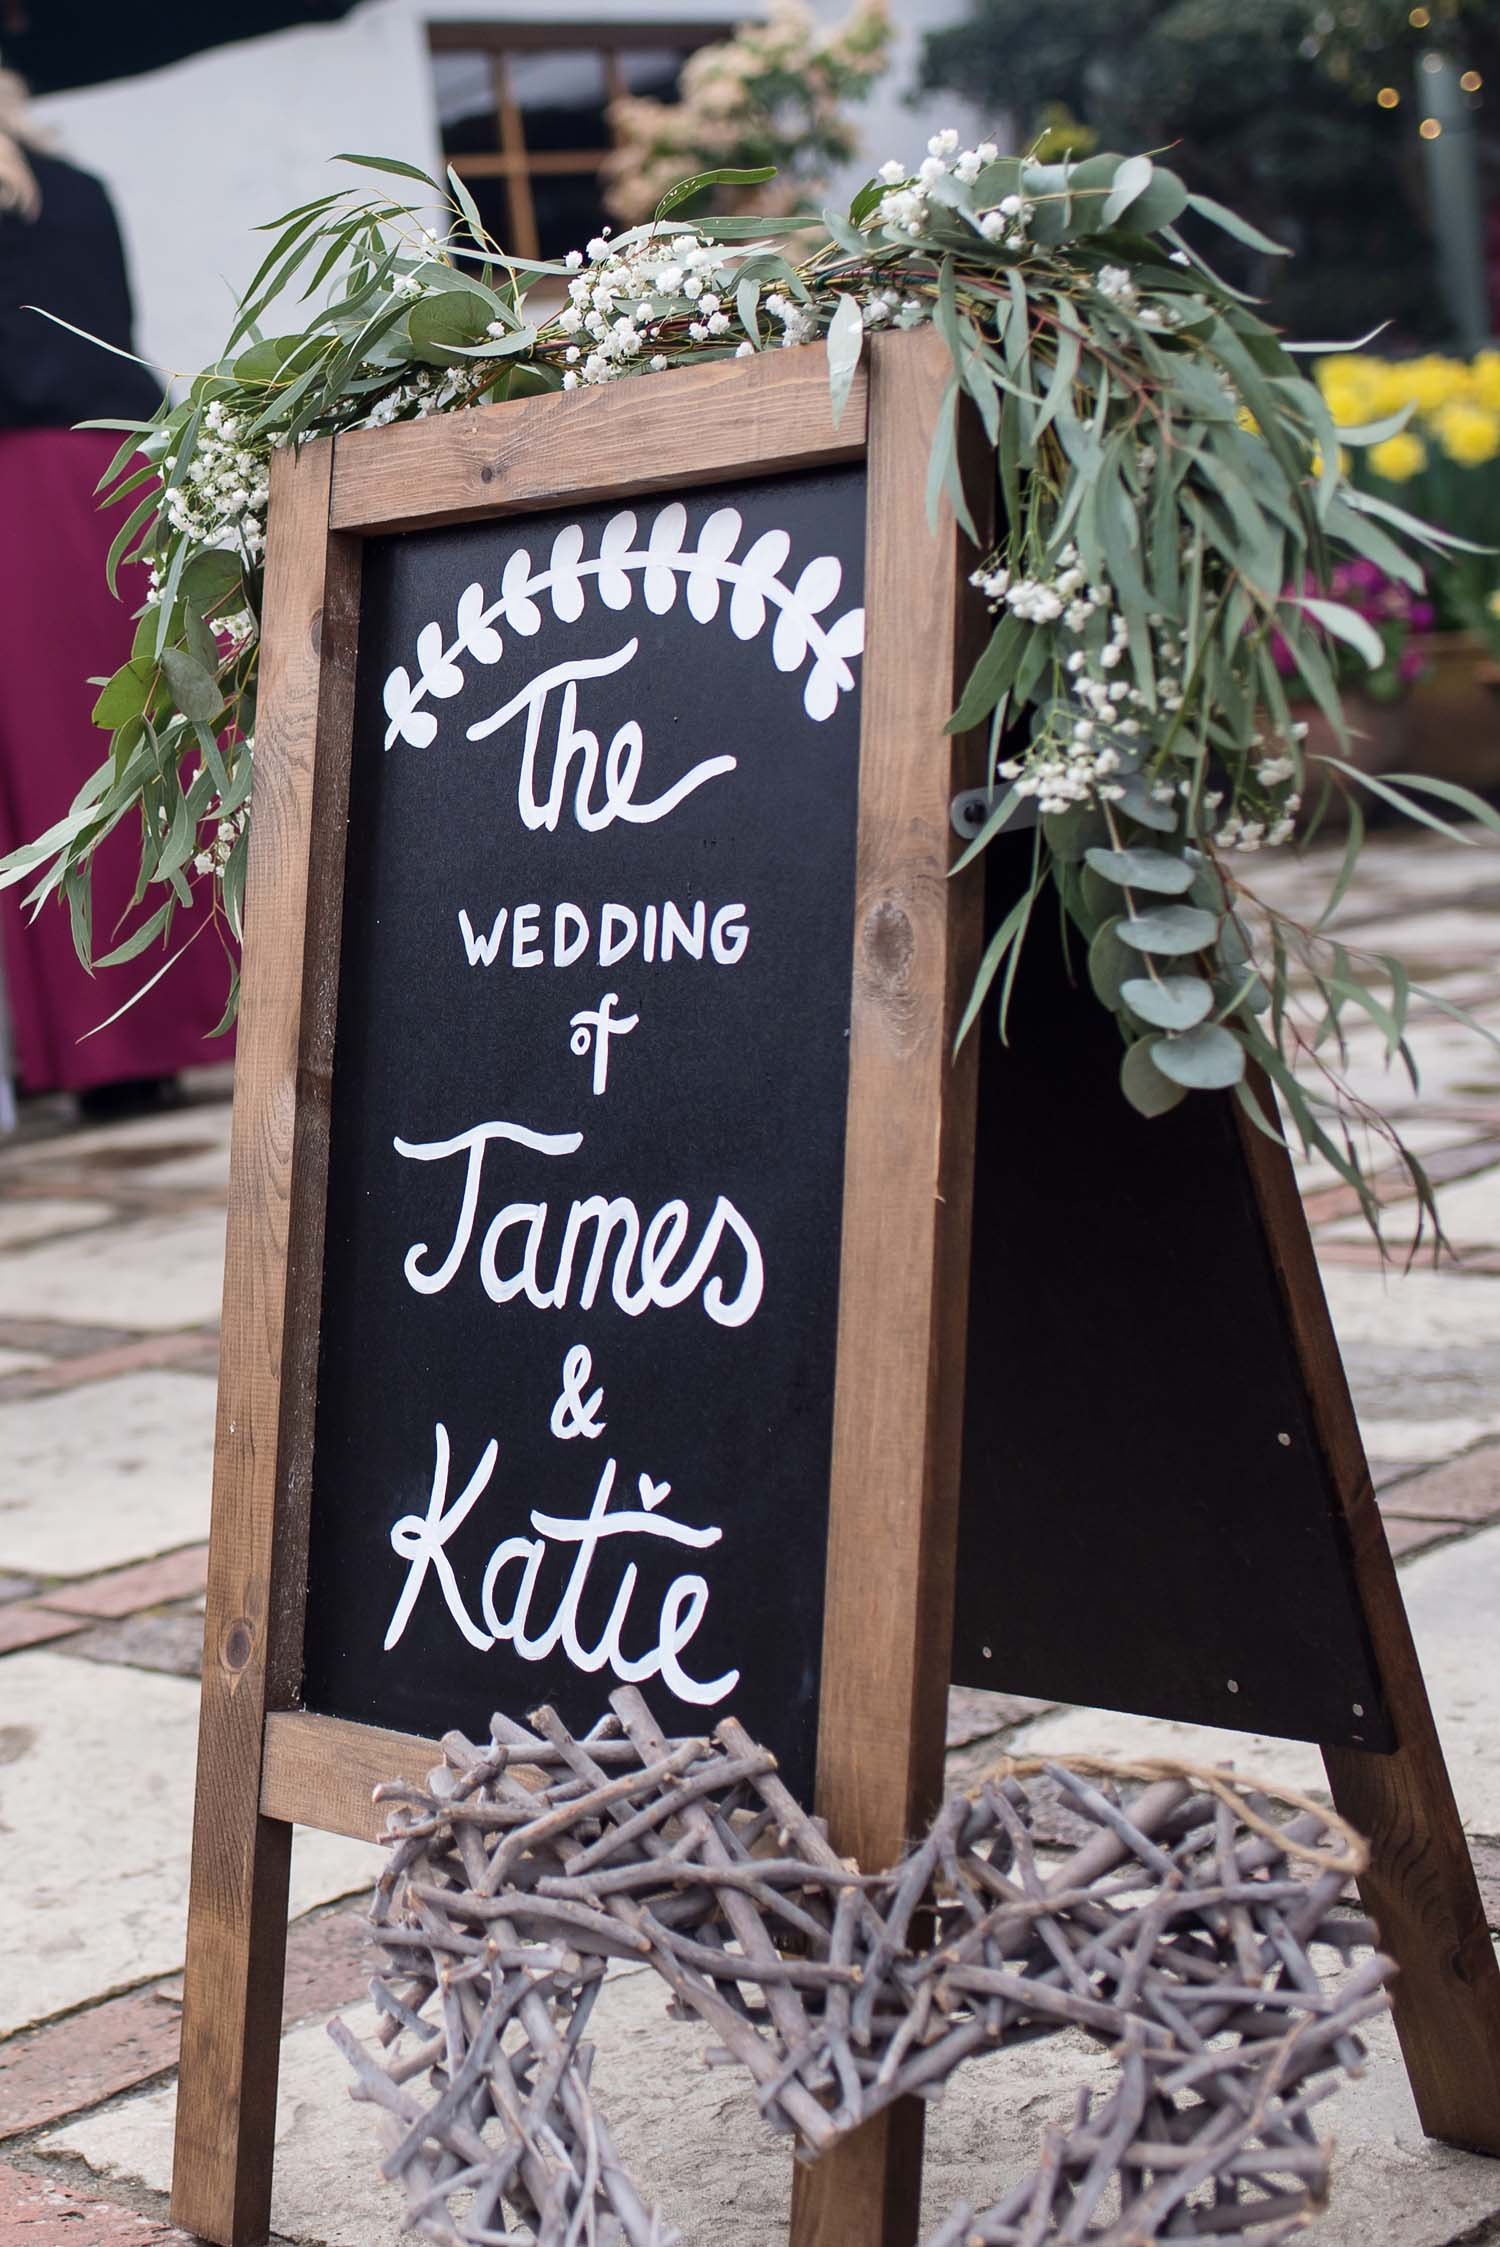 pangdean barn wedding blackboard greenery